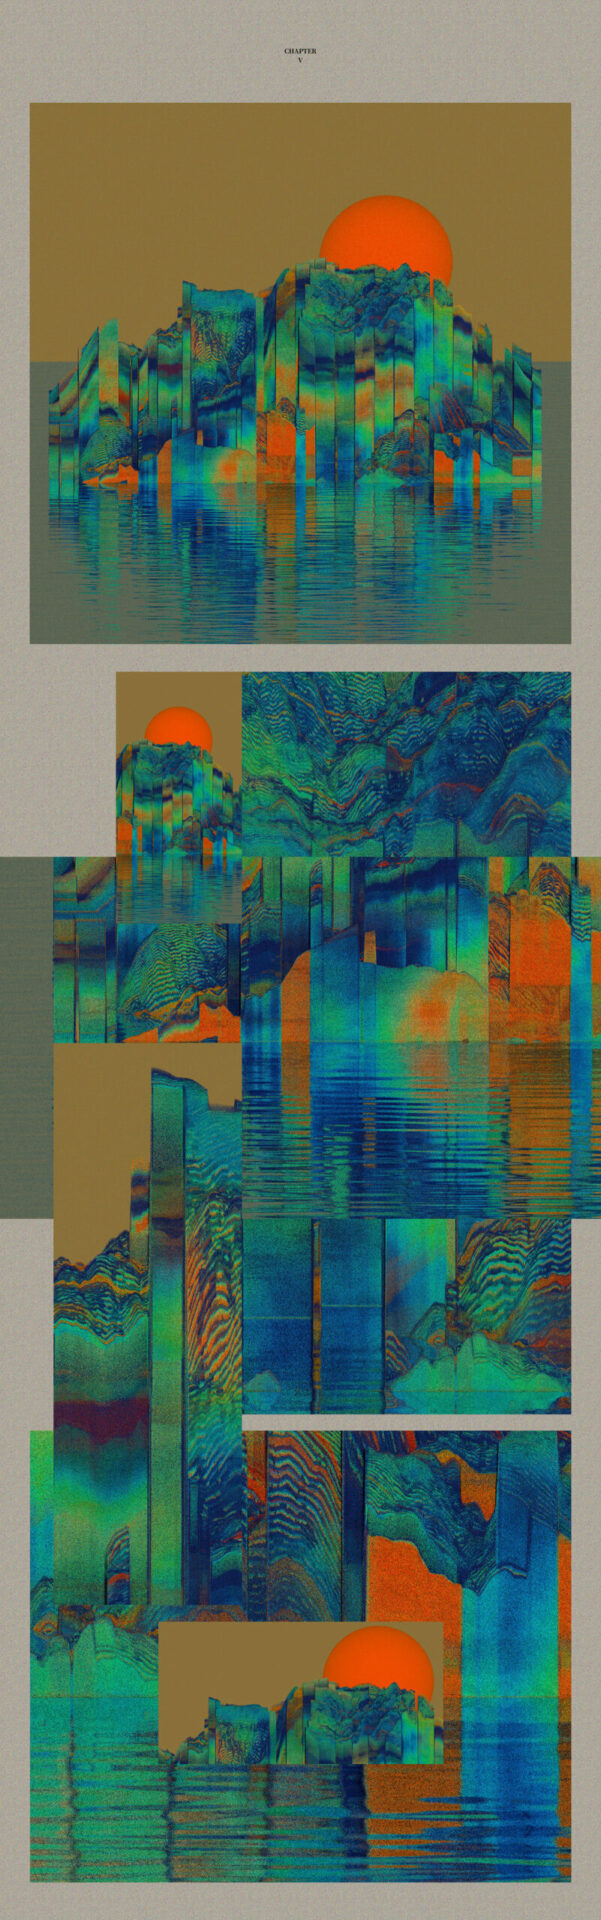 Chinese Designer Particle (Gao Yang) Replicate Nature's Simple Wonders with Algorithms 8